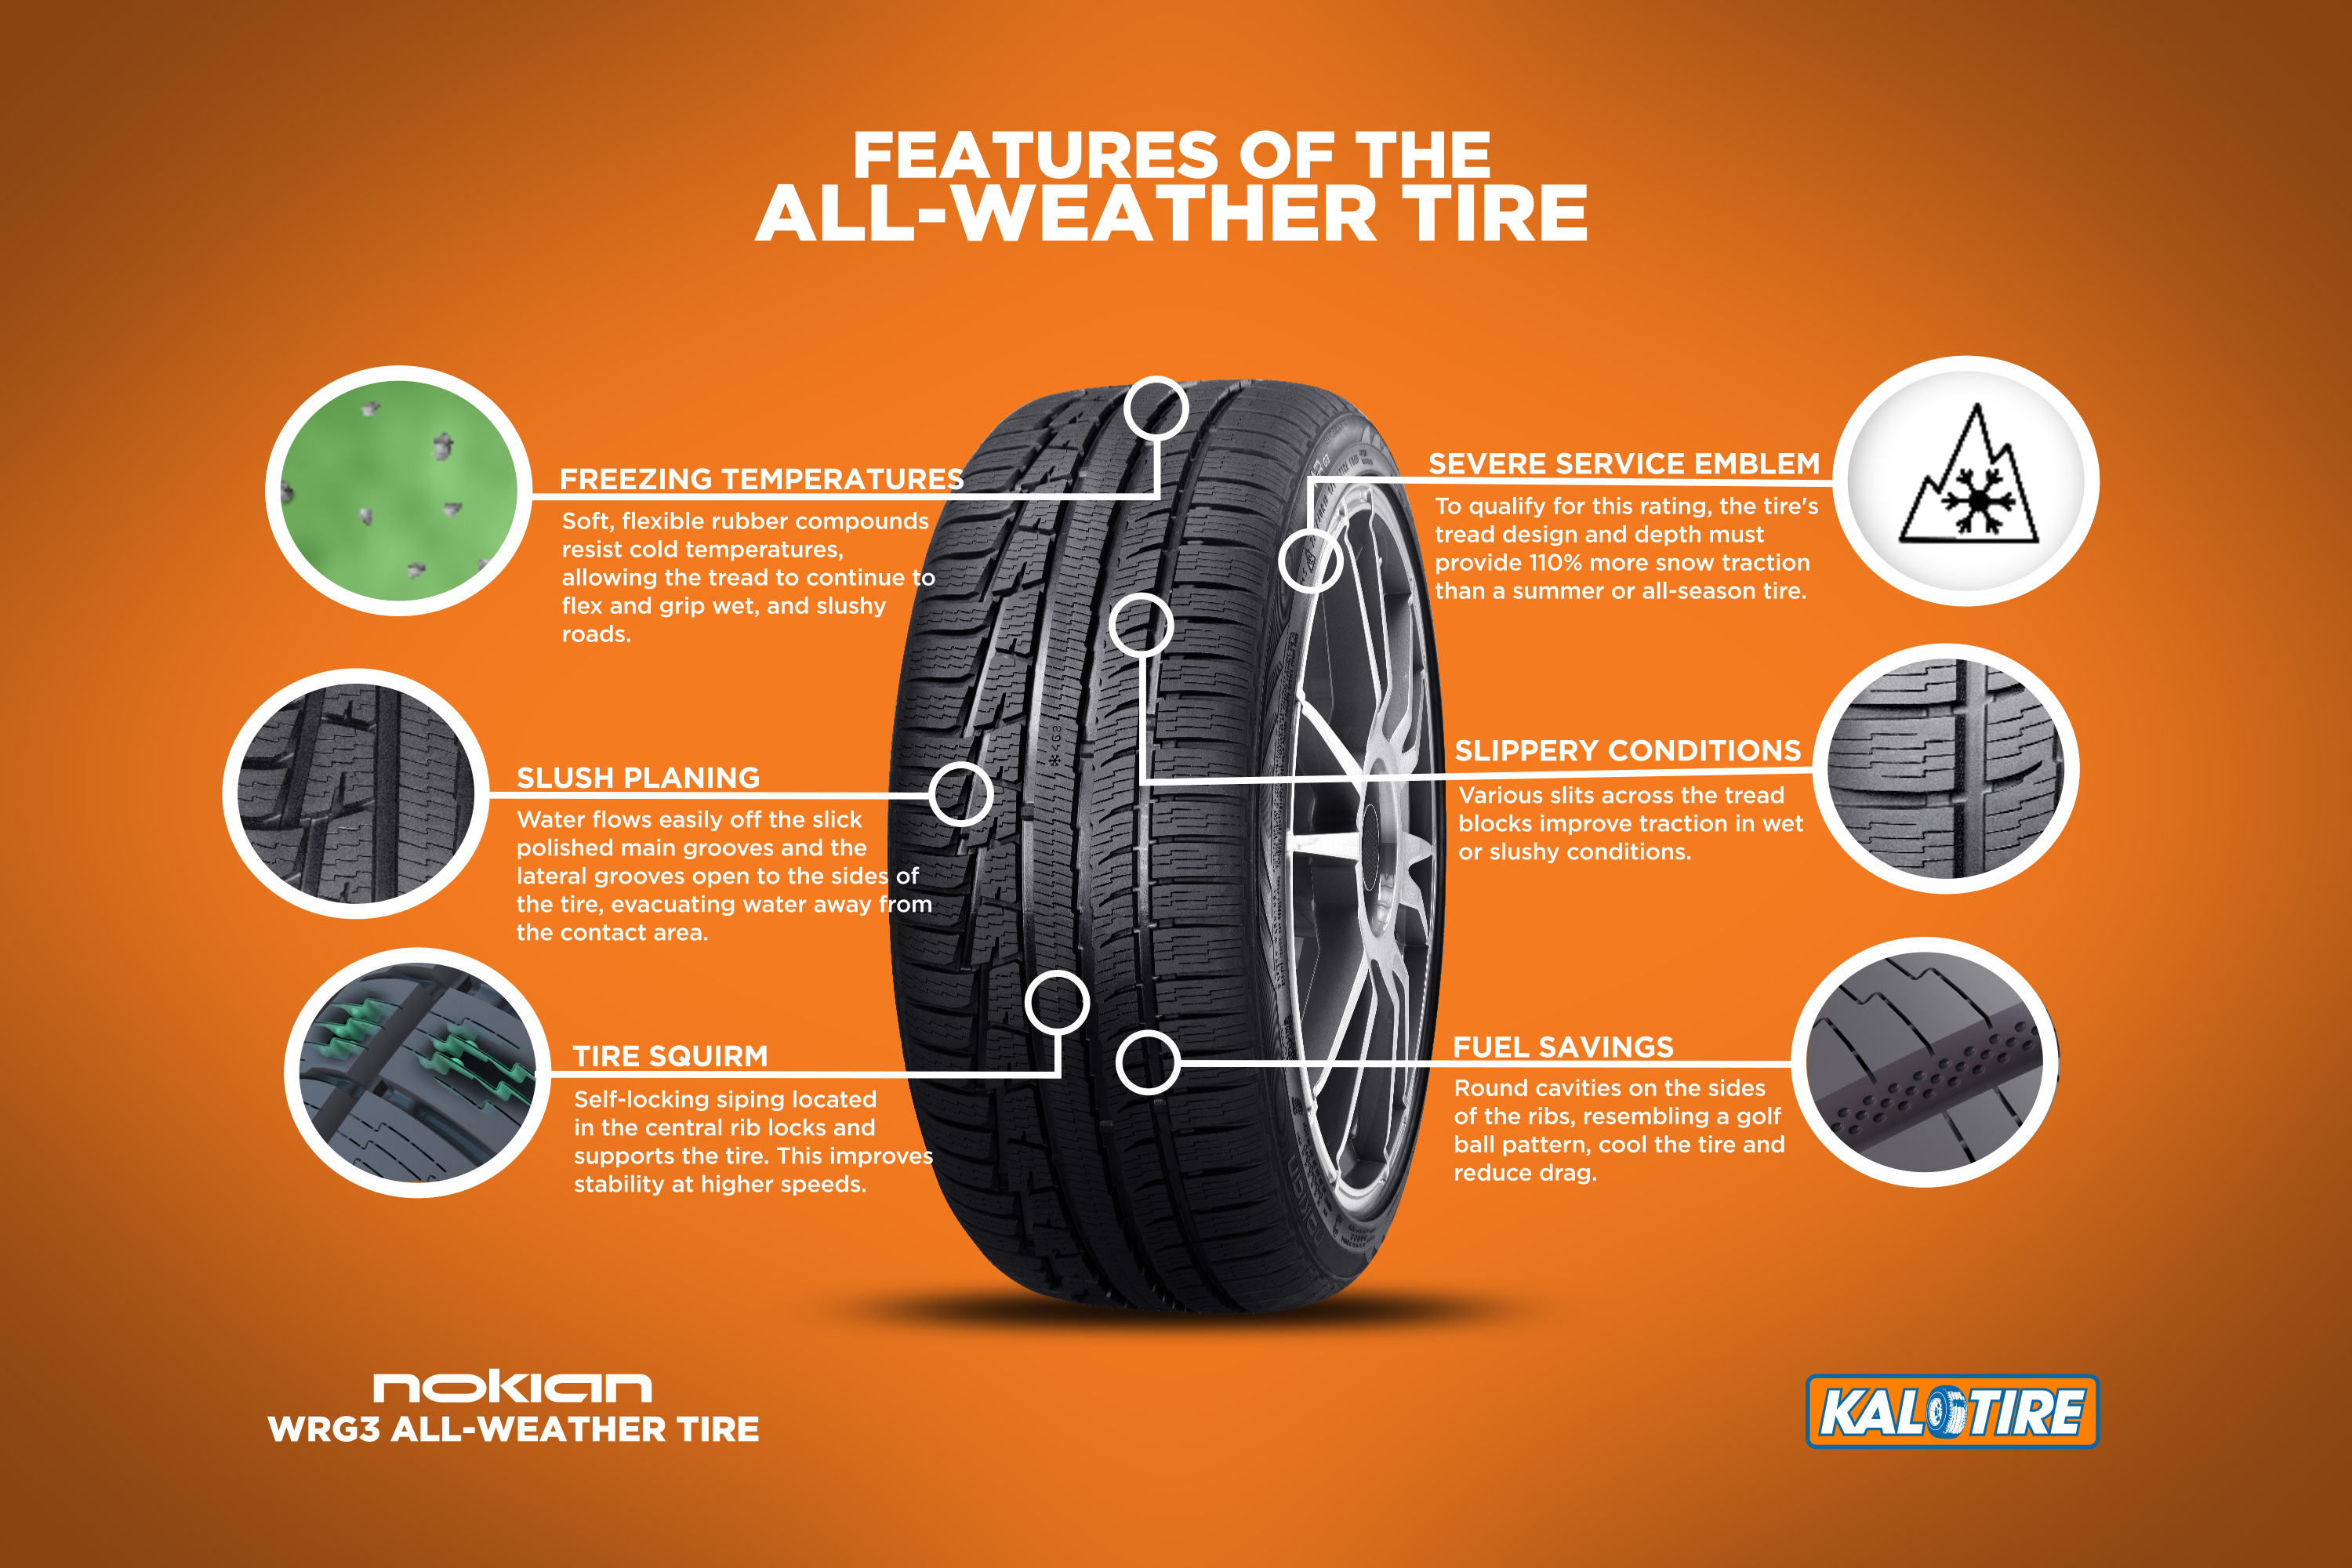 Kal Tire Survey Shows All Weather Tires Gaining Traction